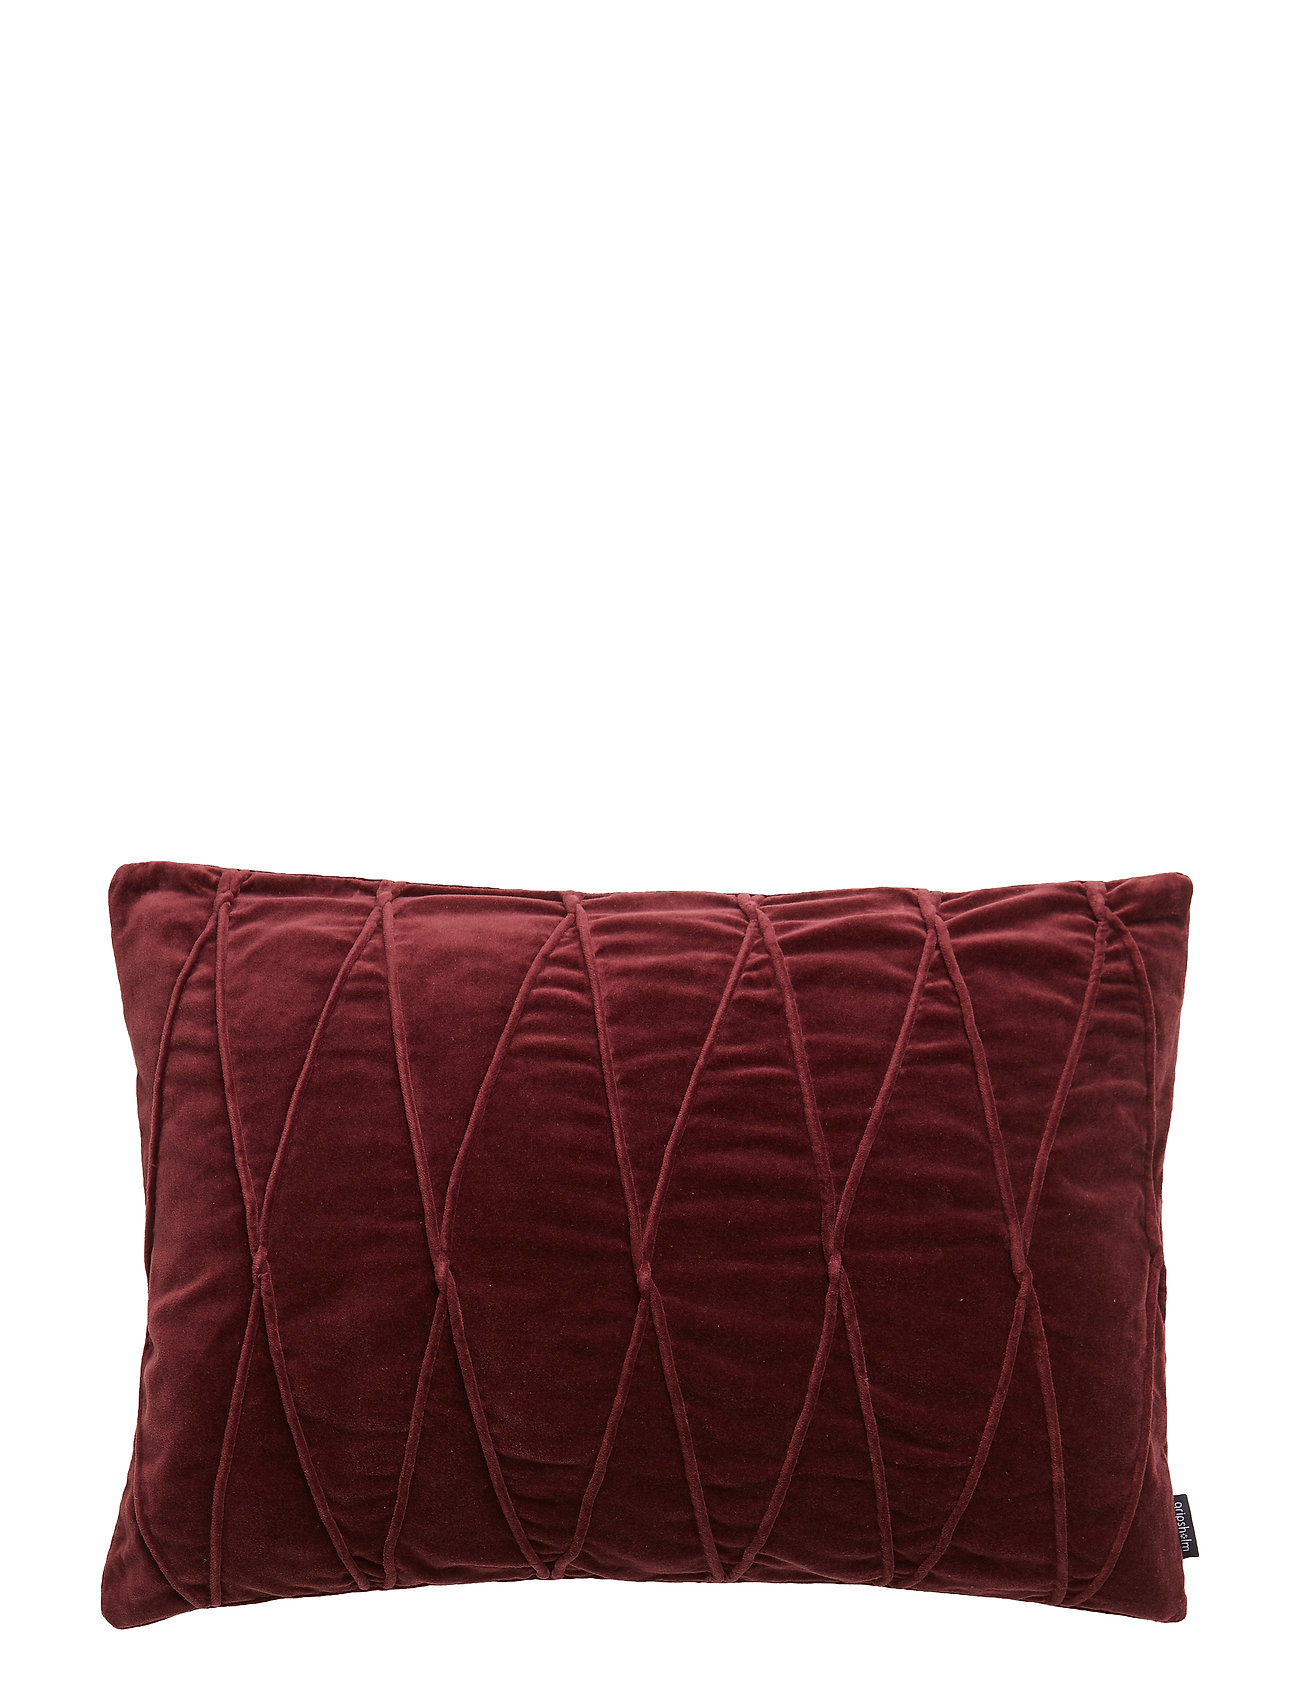 Ina GotswineGripsholm Cover Cover GotswineGripsholm Cushion Ina Cover Ina Cushion Cushion ZOkXiTPu